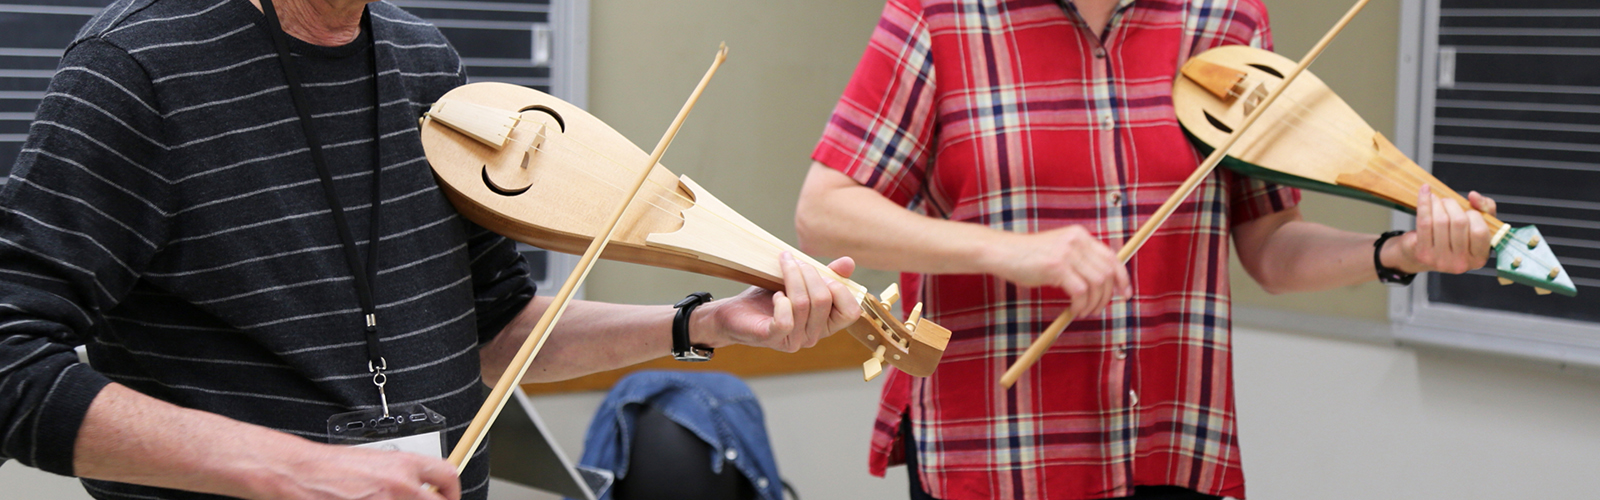 Two participants play early music instruments during a workshop at MEMF 2015